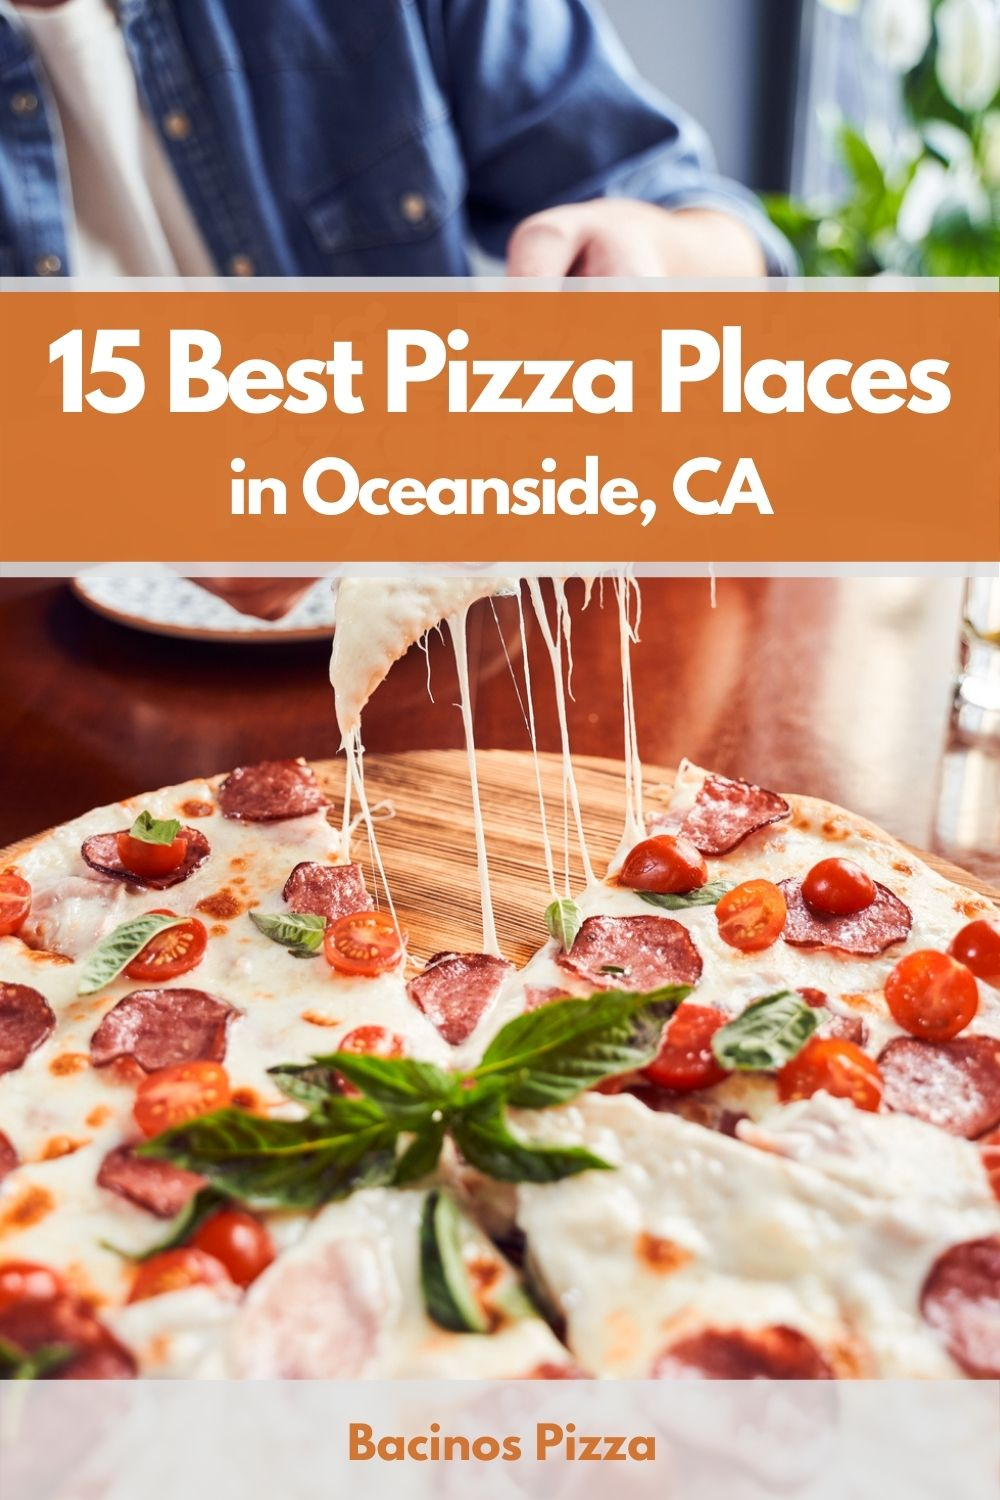 15 Best Pizza Places in Oceanside, CA pin 2